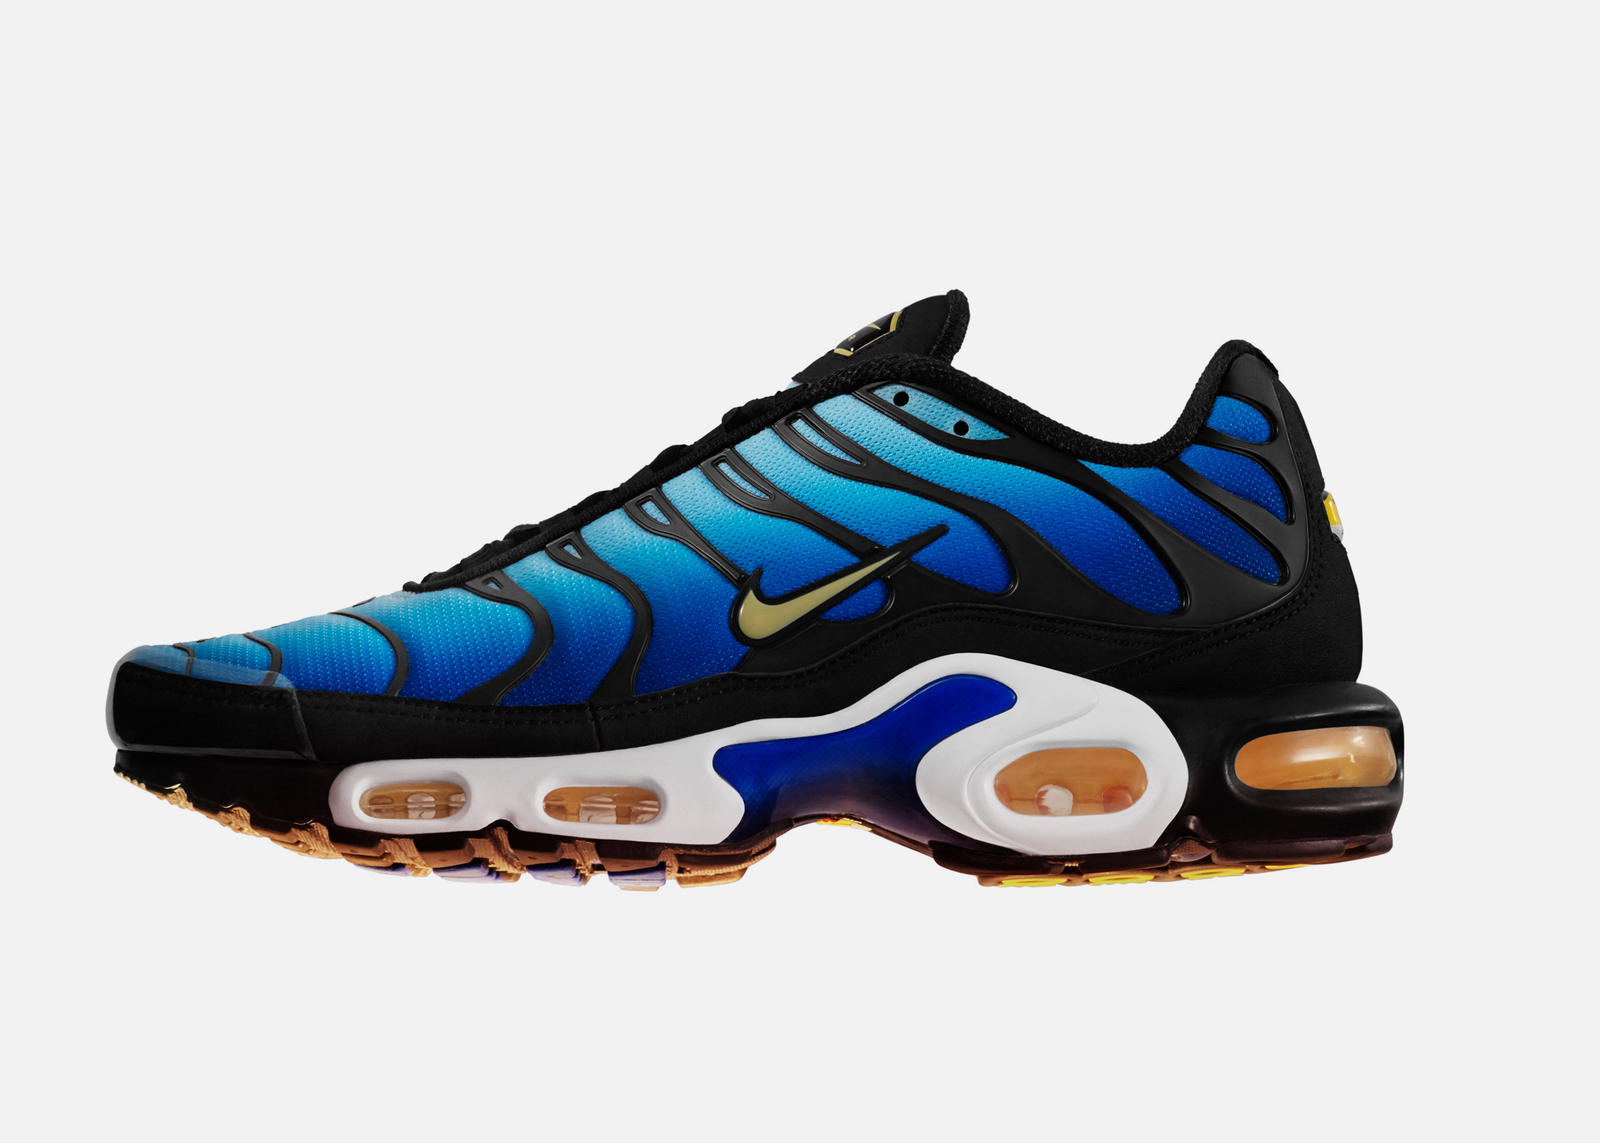 online retailer dde1a 4d885 The Untold Story of the Nike Air Max Plus 20